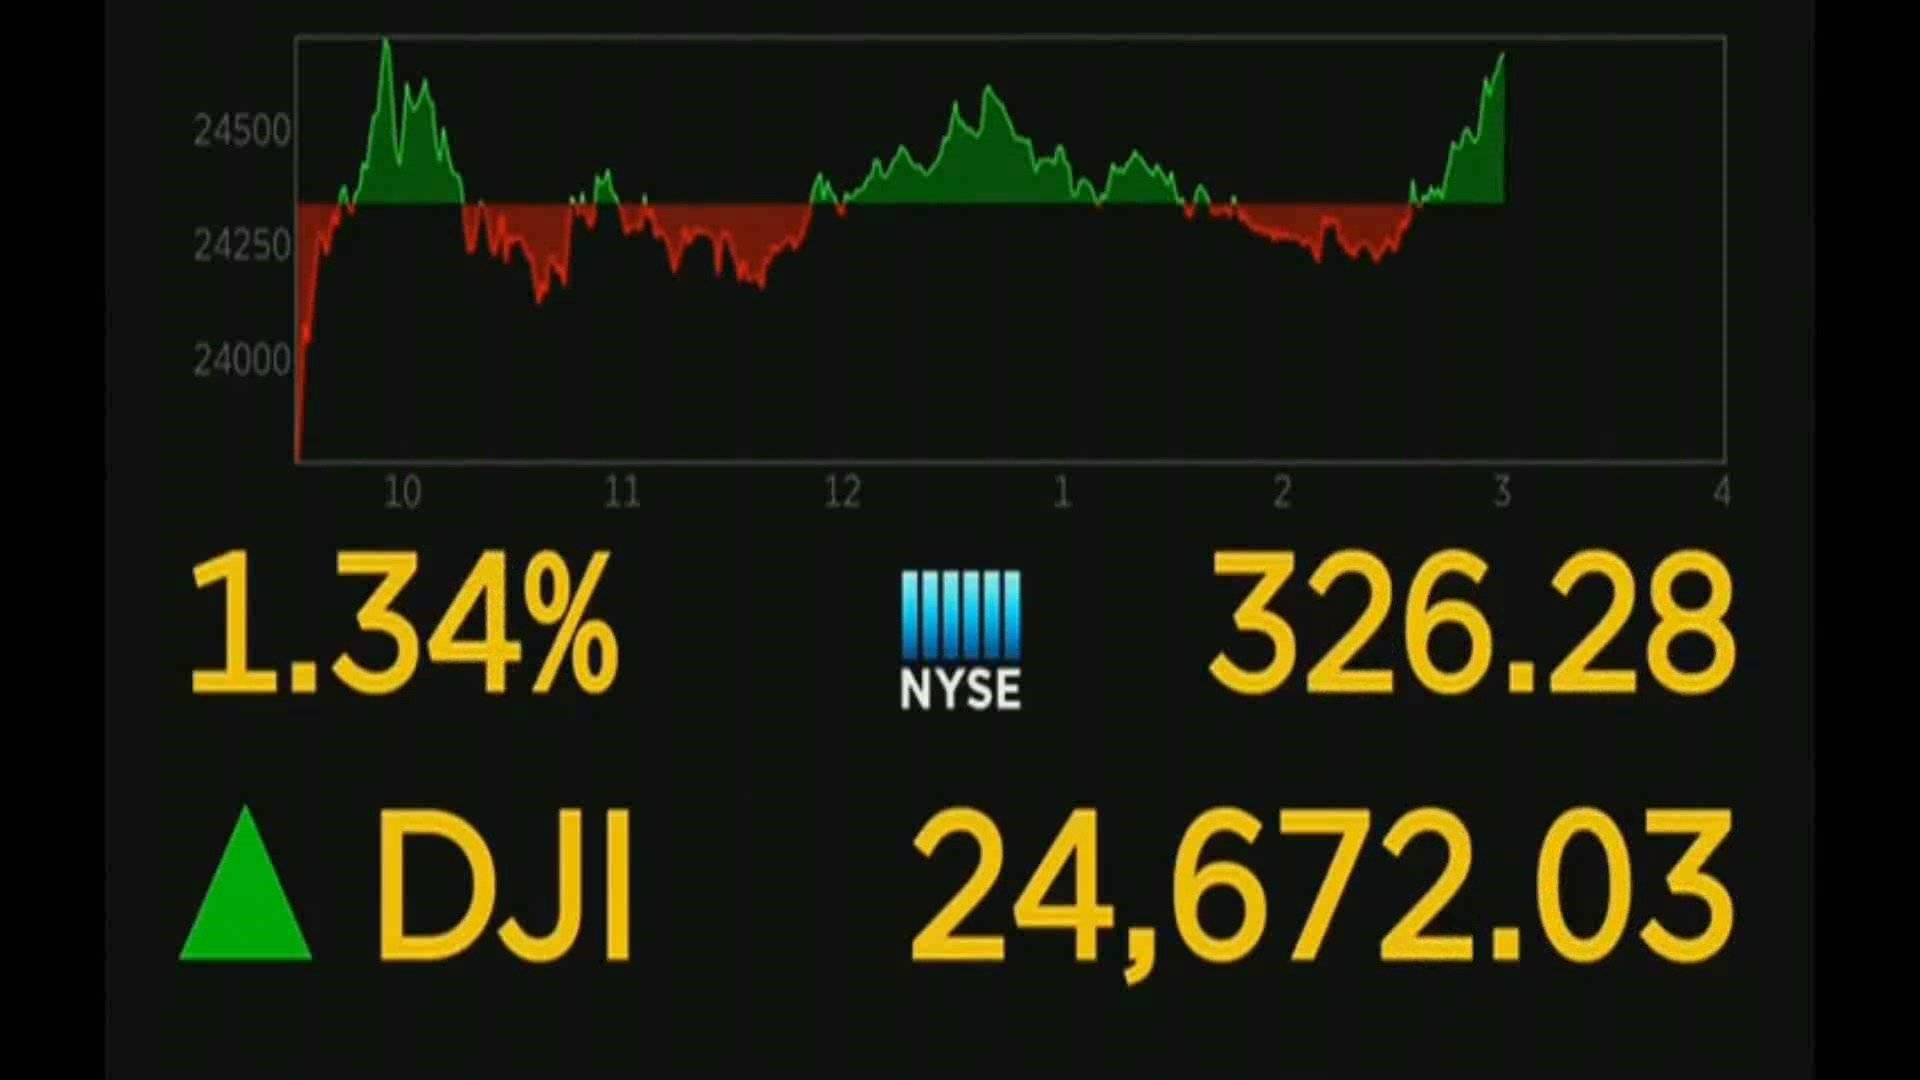 Dow drops more than 1500, erasing gain for 2018